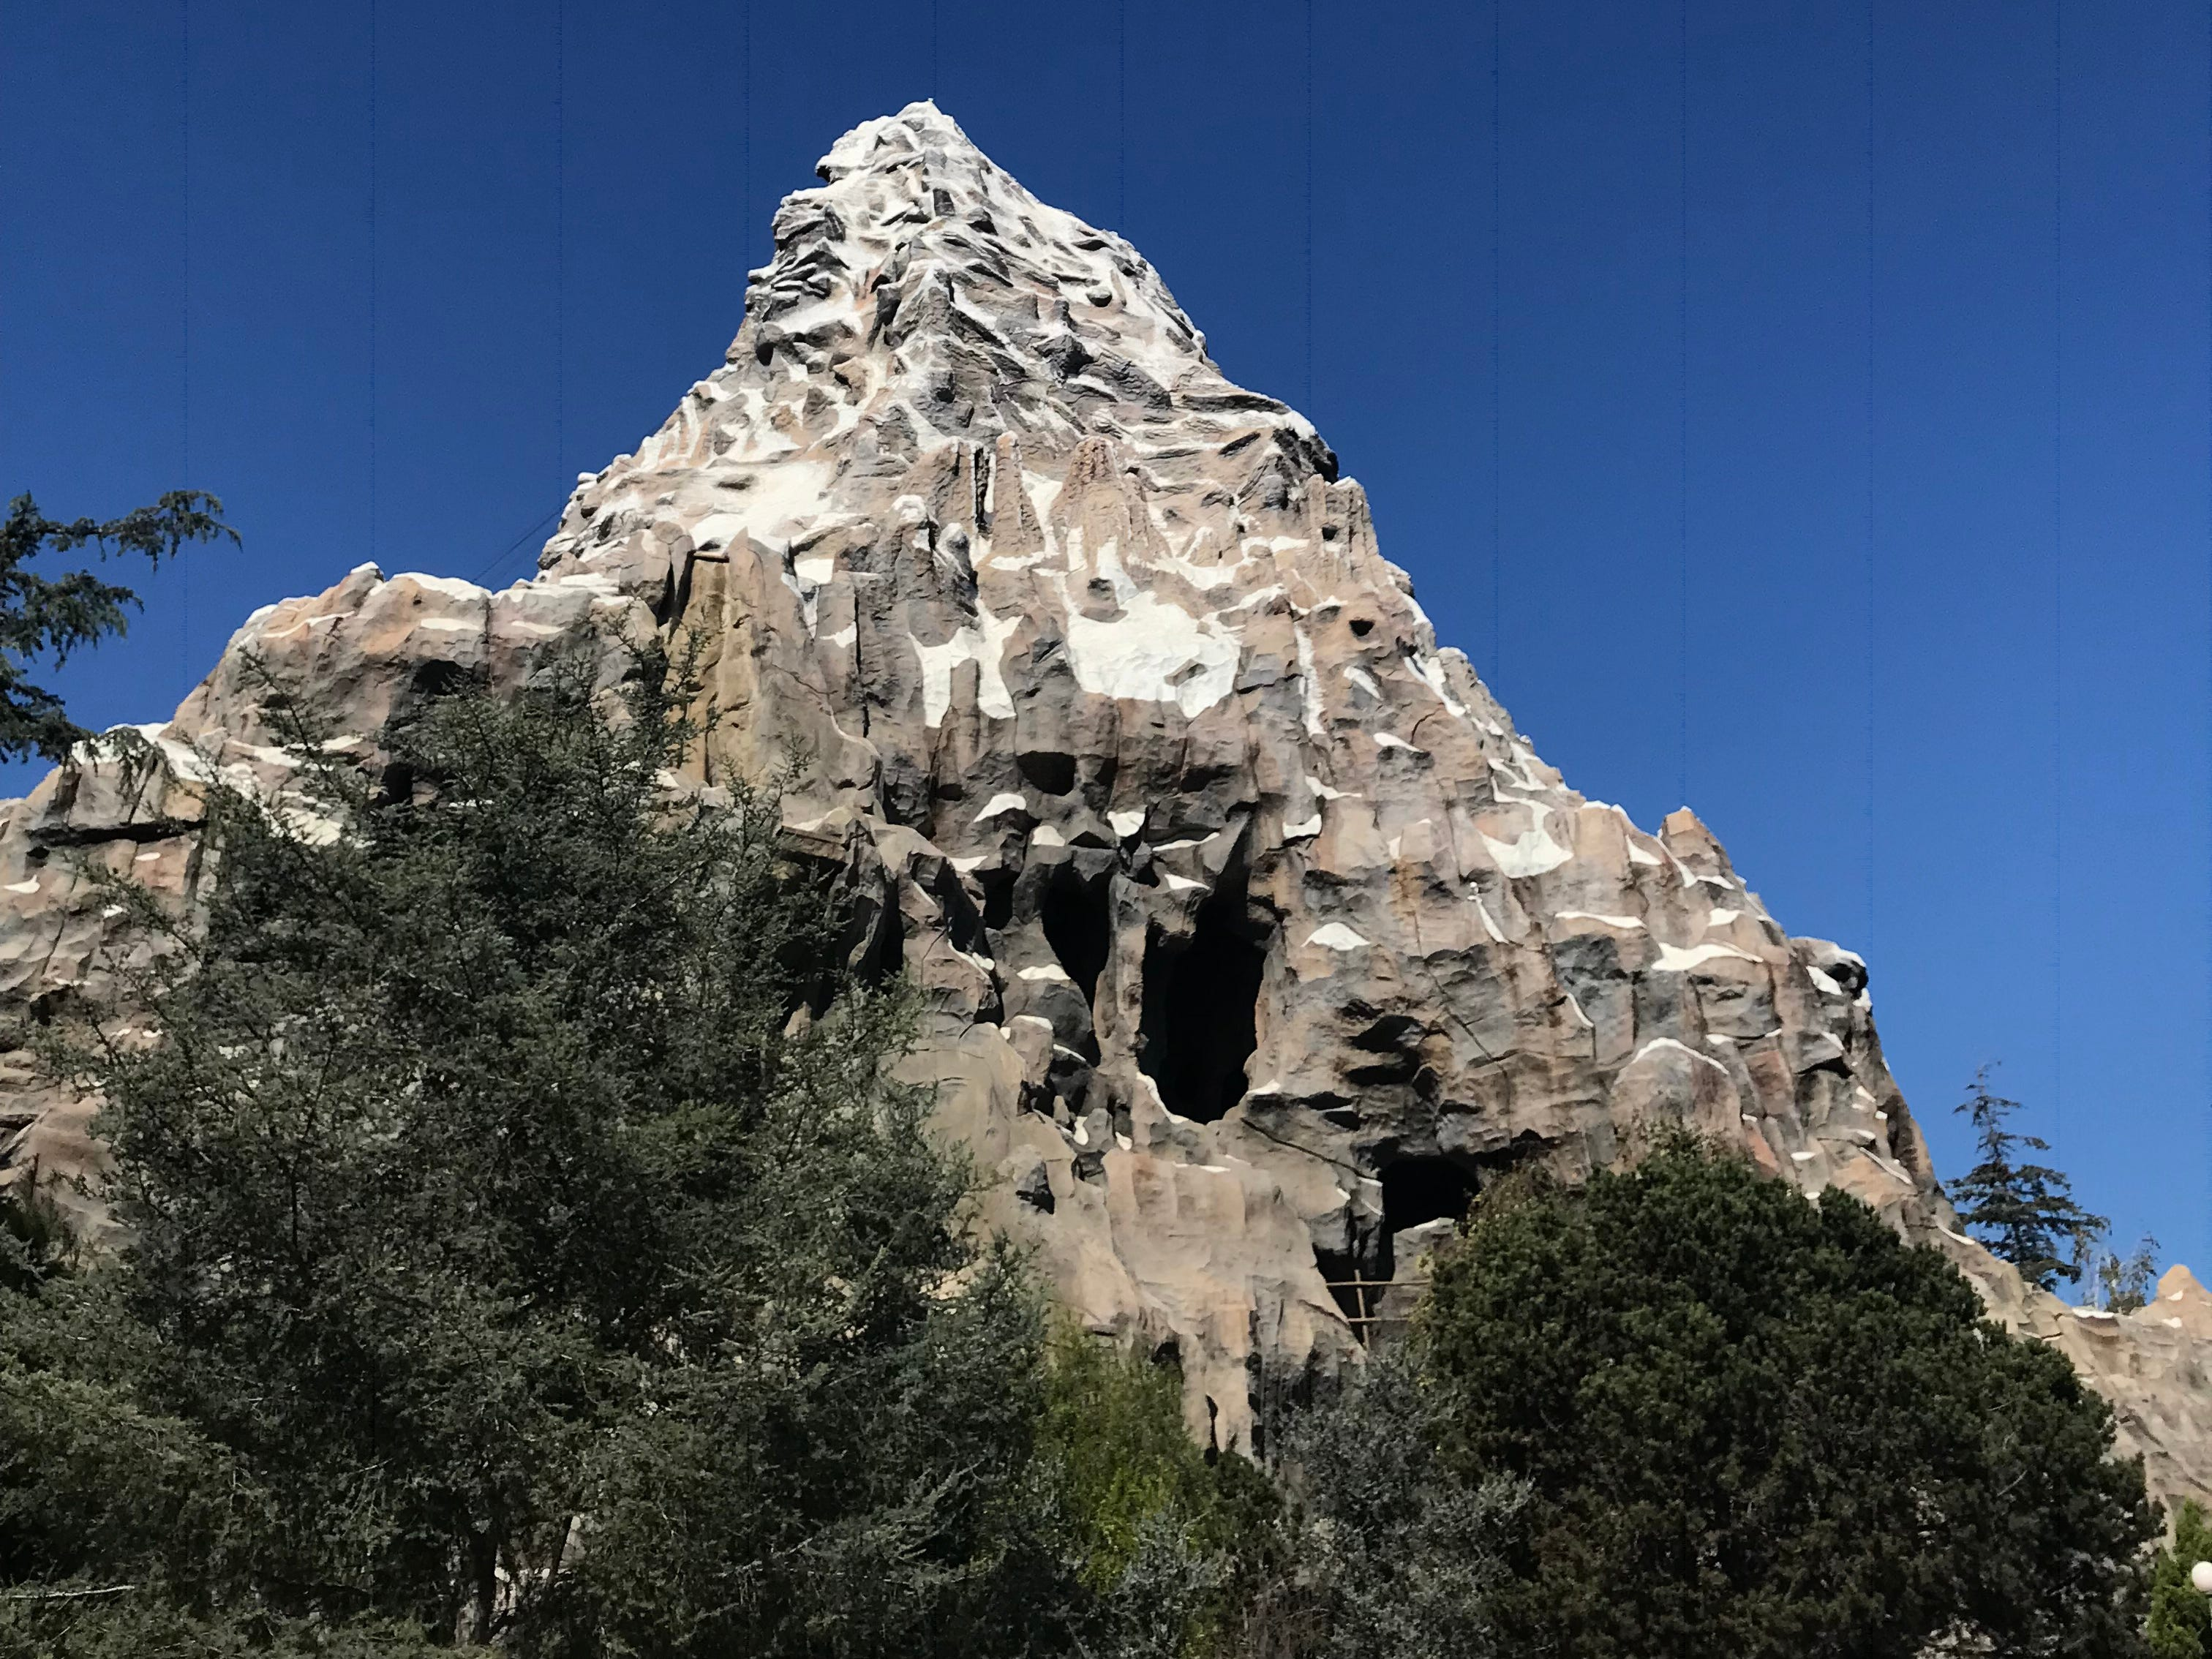 Slide 15 of 23: Since 1959, the Matterhorn has been the highest point inside Disneyland Park at 147 feet. The mountain was built to a one-100th scale of the actual Matterhorn Mountain, which stands at 14,700 feet.